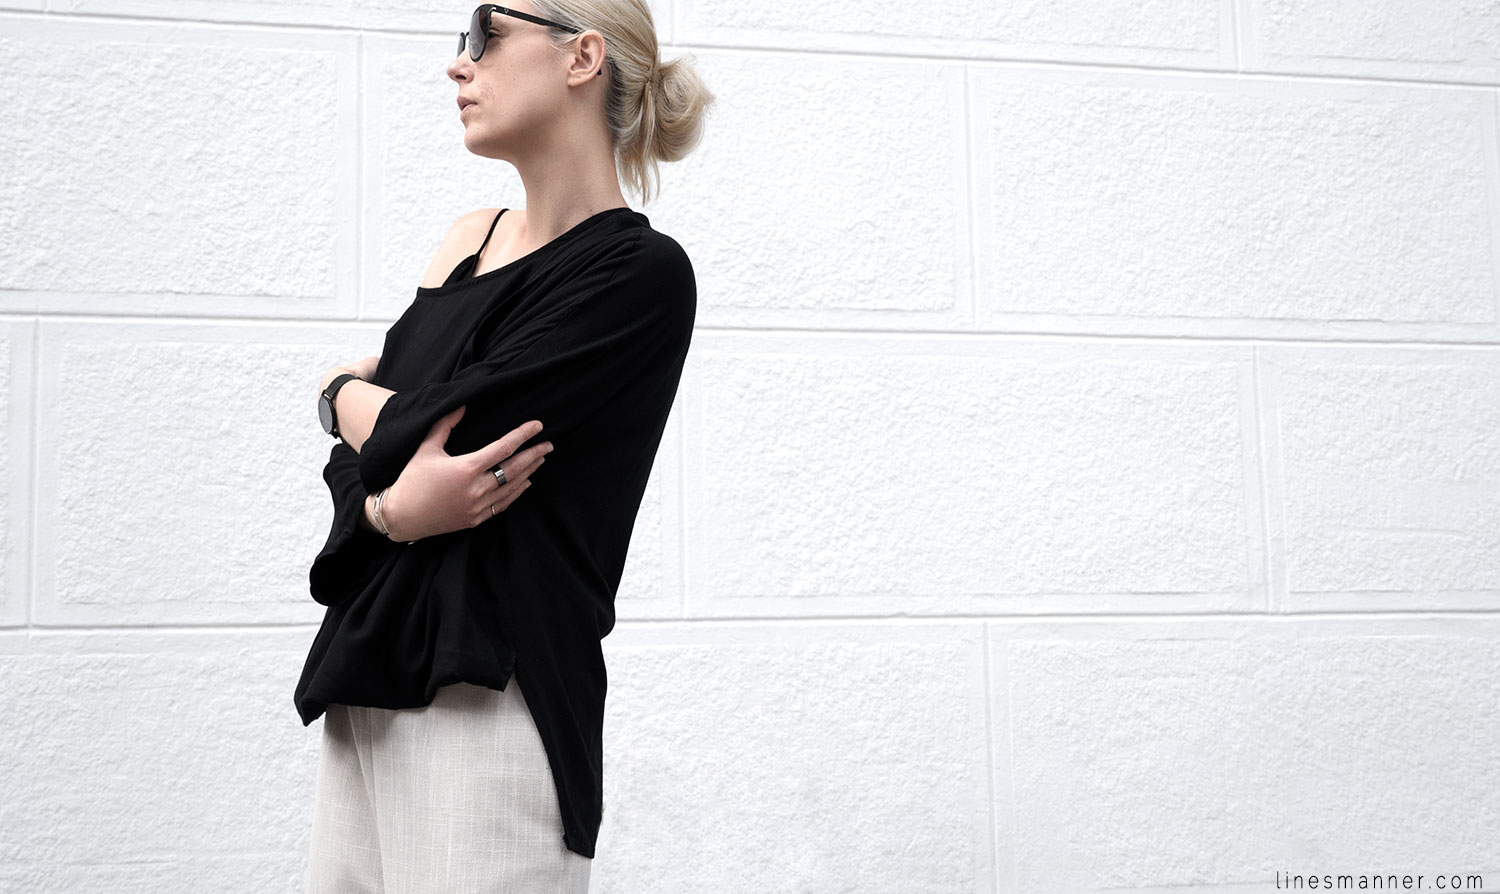 Lines-Manner-Modern-Minimal-Effortless-Casual-Wide_Leg_Culotte-Coidlyn_Wight-Draped-Coton-Linen-Sustainable-Slow_Fashion-Neutrals-Structure-Volume-Fluid-Simplicity-Details-3